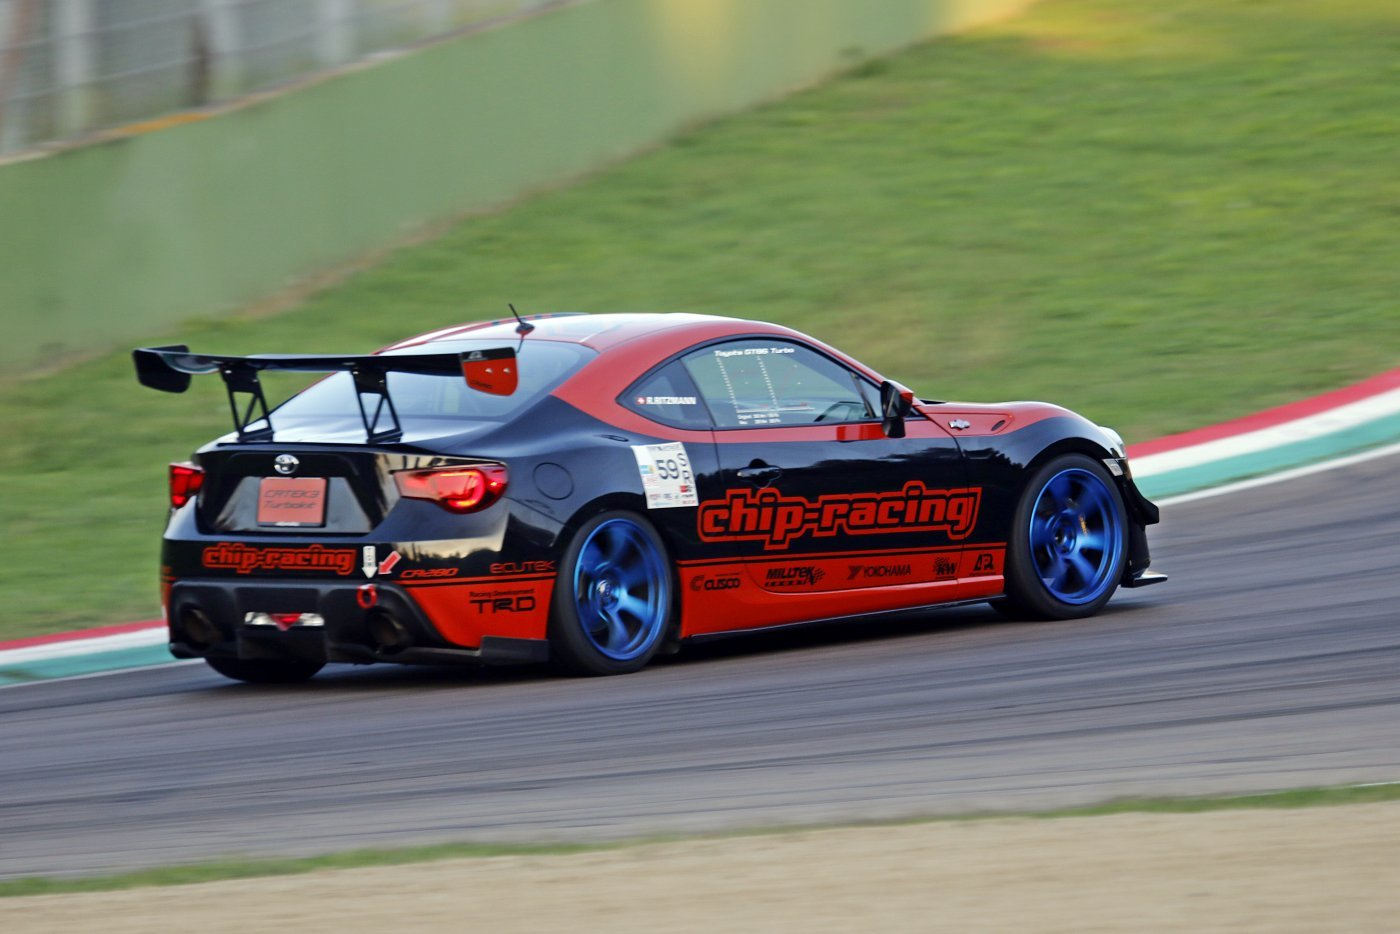 Chip-Racing GT86 Time Attack Imola 2019